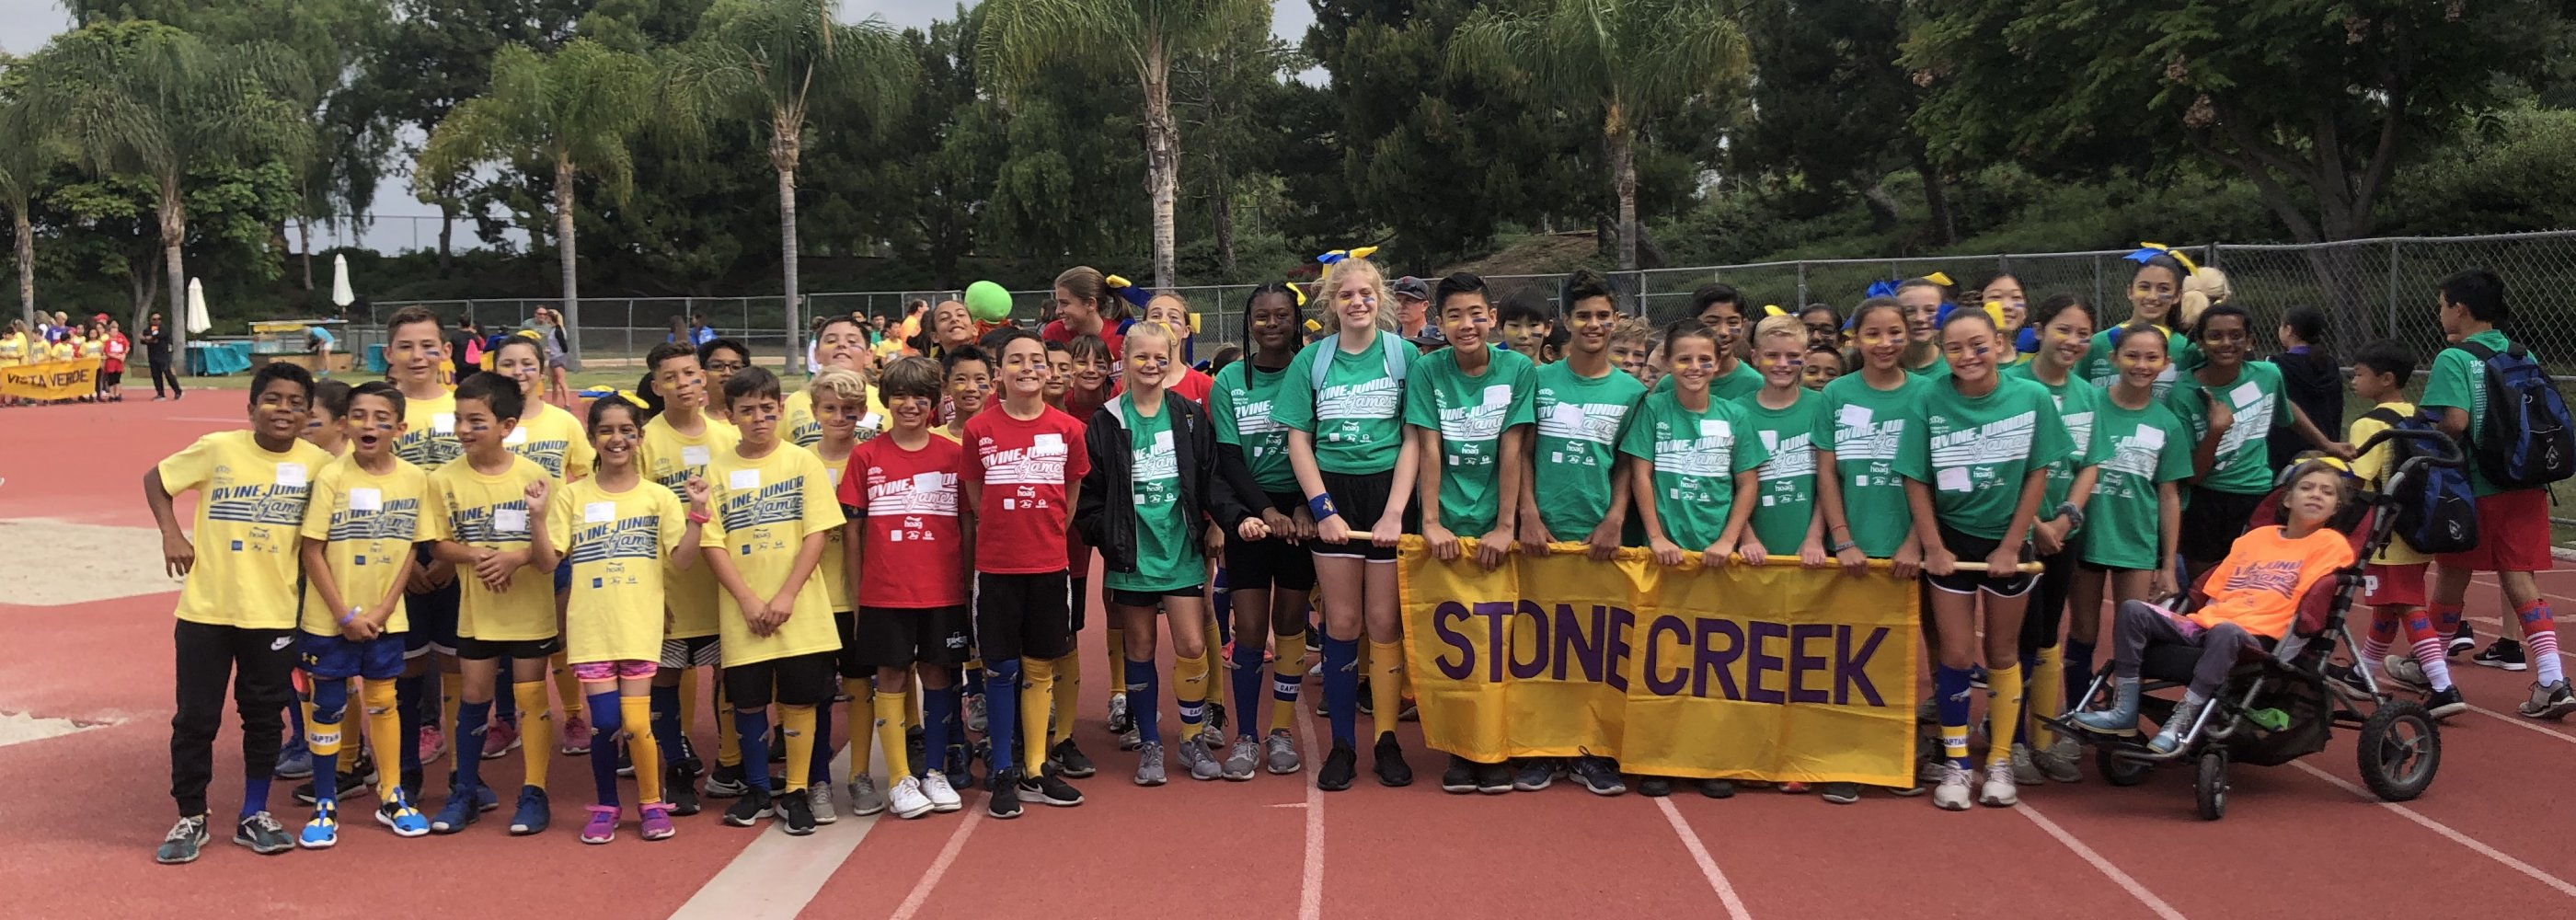 STONE CREEK AT IRVINE JUNIOR GAMES